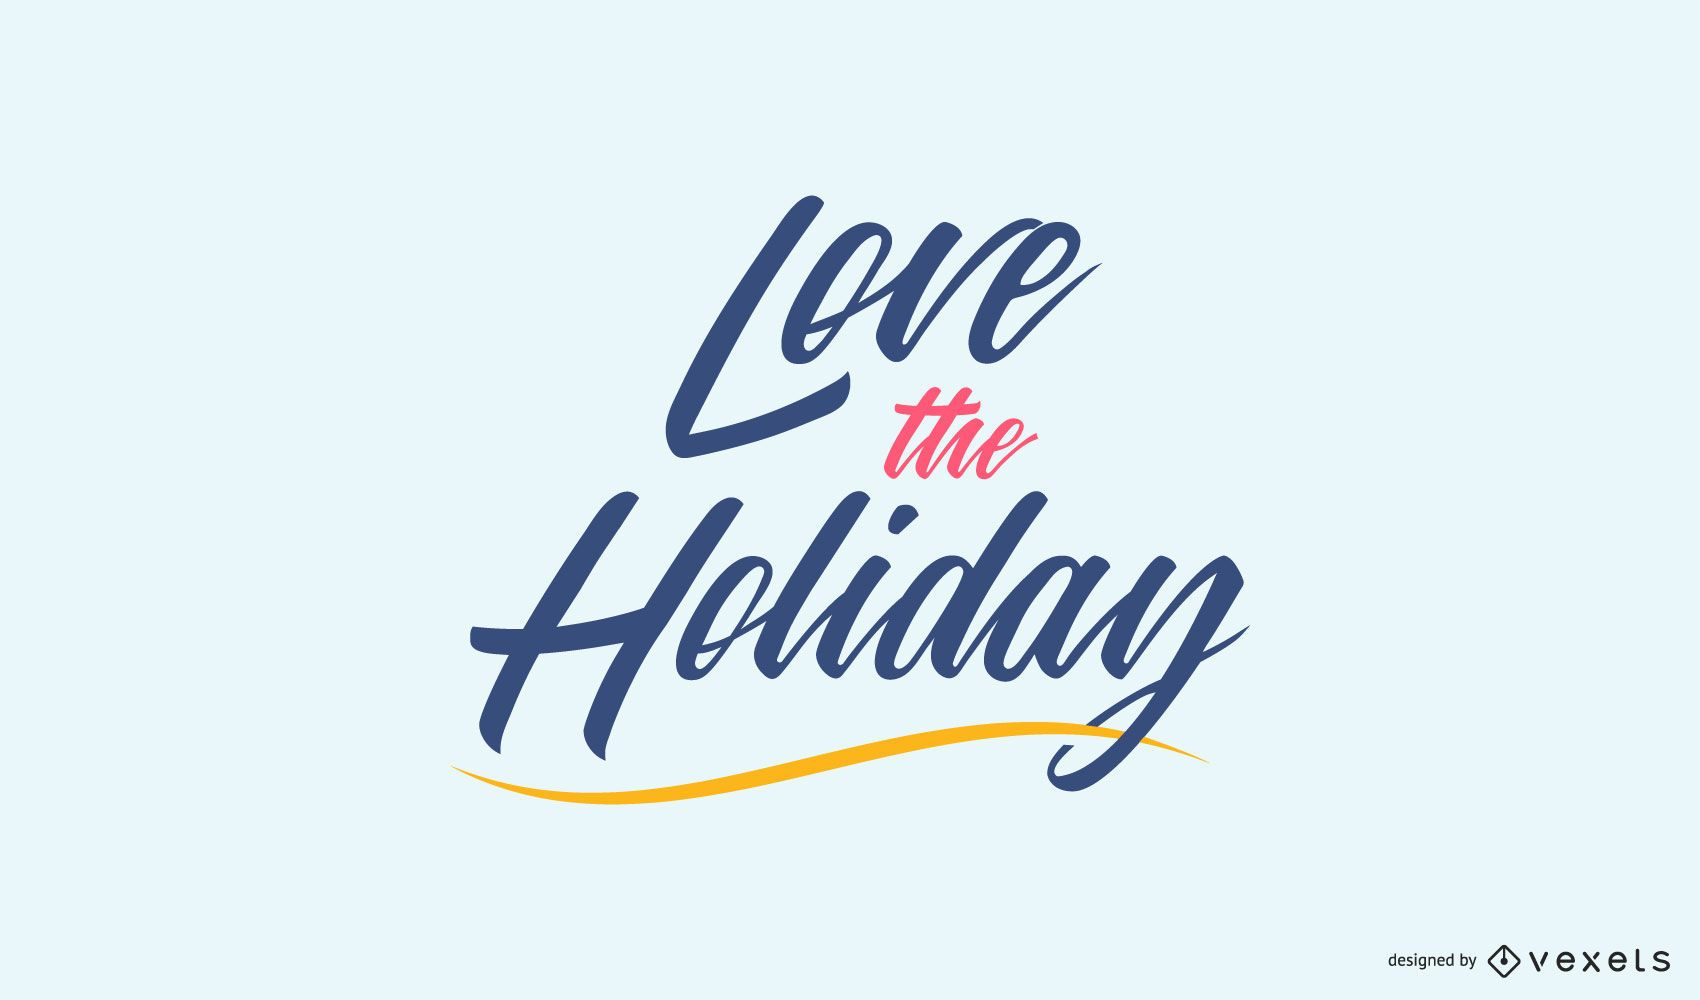 Love The Holiday Lettering Quote Design